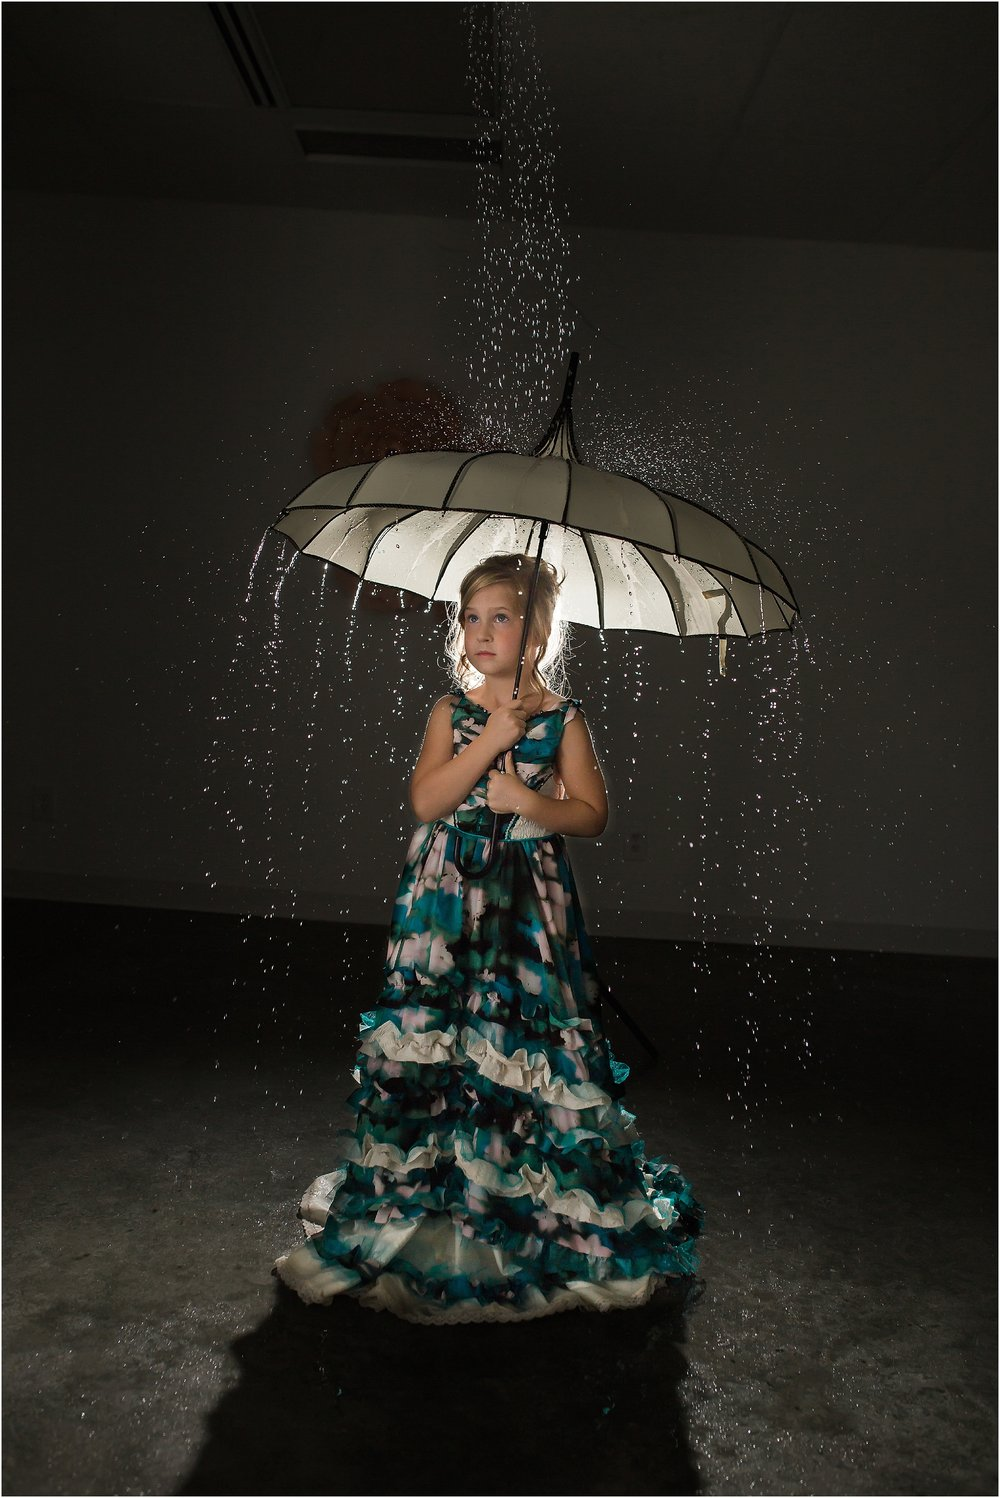 dynamic-image-little-girl-in-rain-at-night.jpg